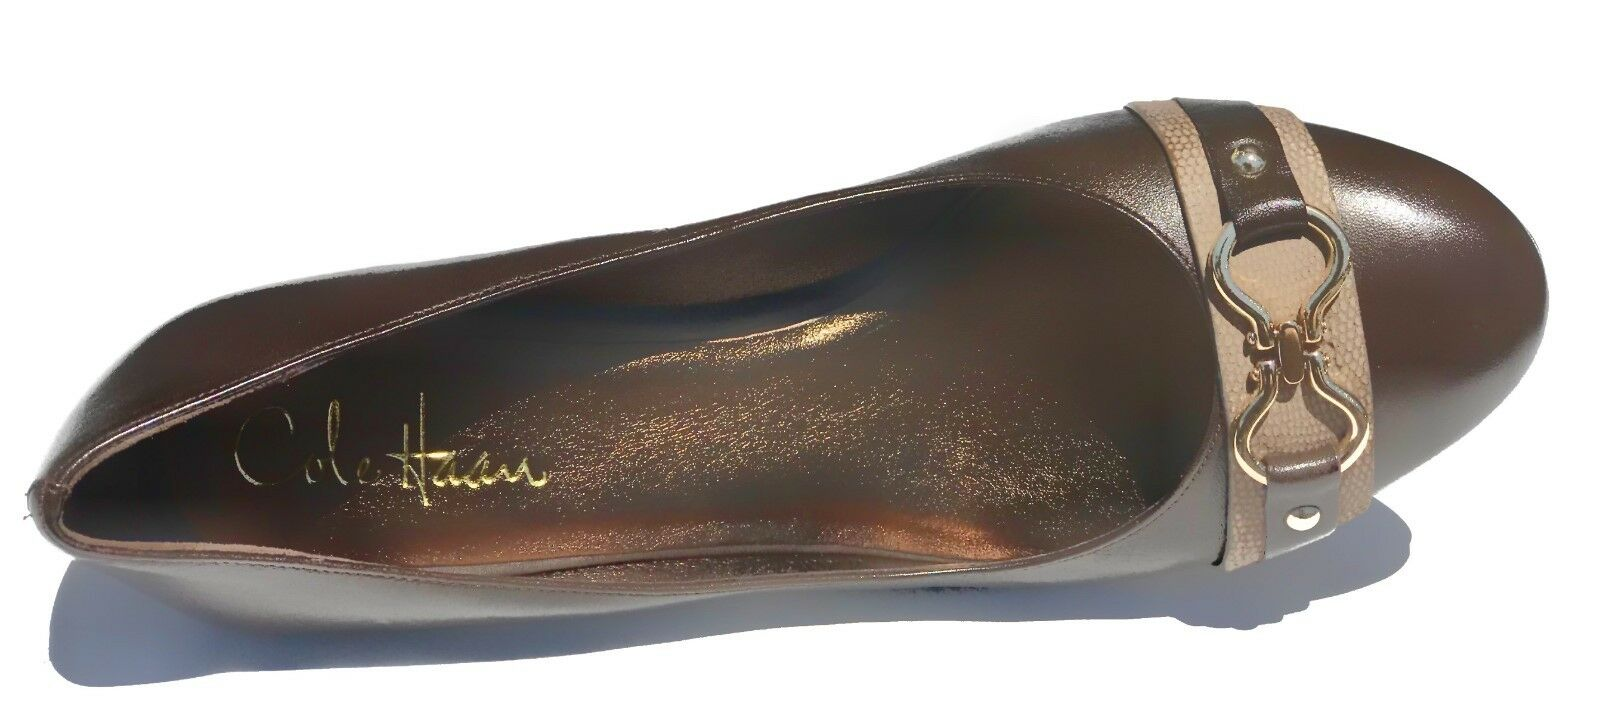 Cole Cole Cole Haan AIR LAINEY Chocolate Leather Pump Heels shoes Womens 9.5 NEW IN BOX b7f23b